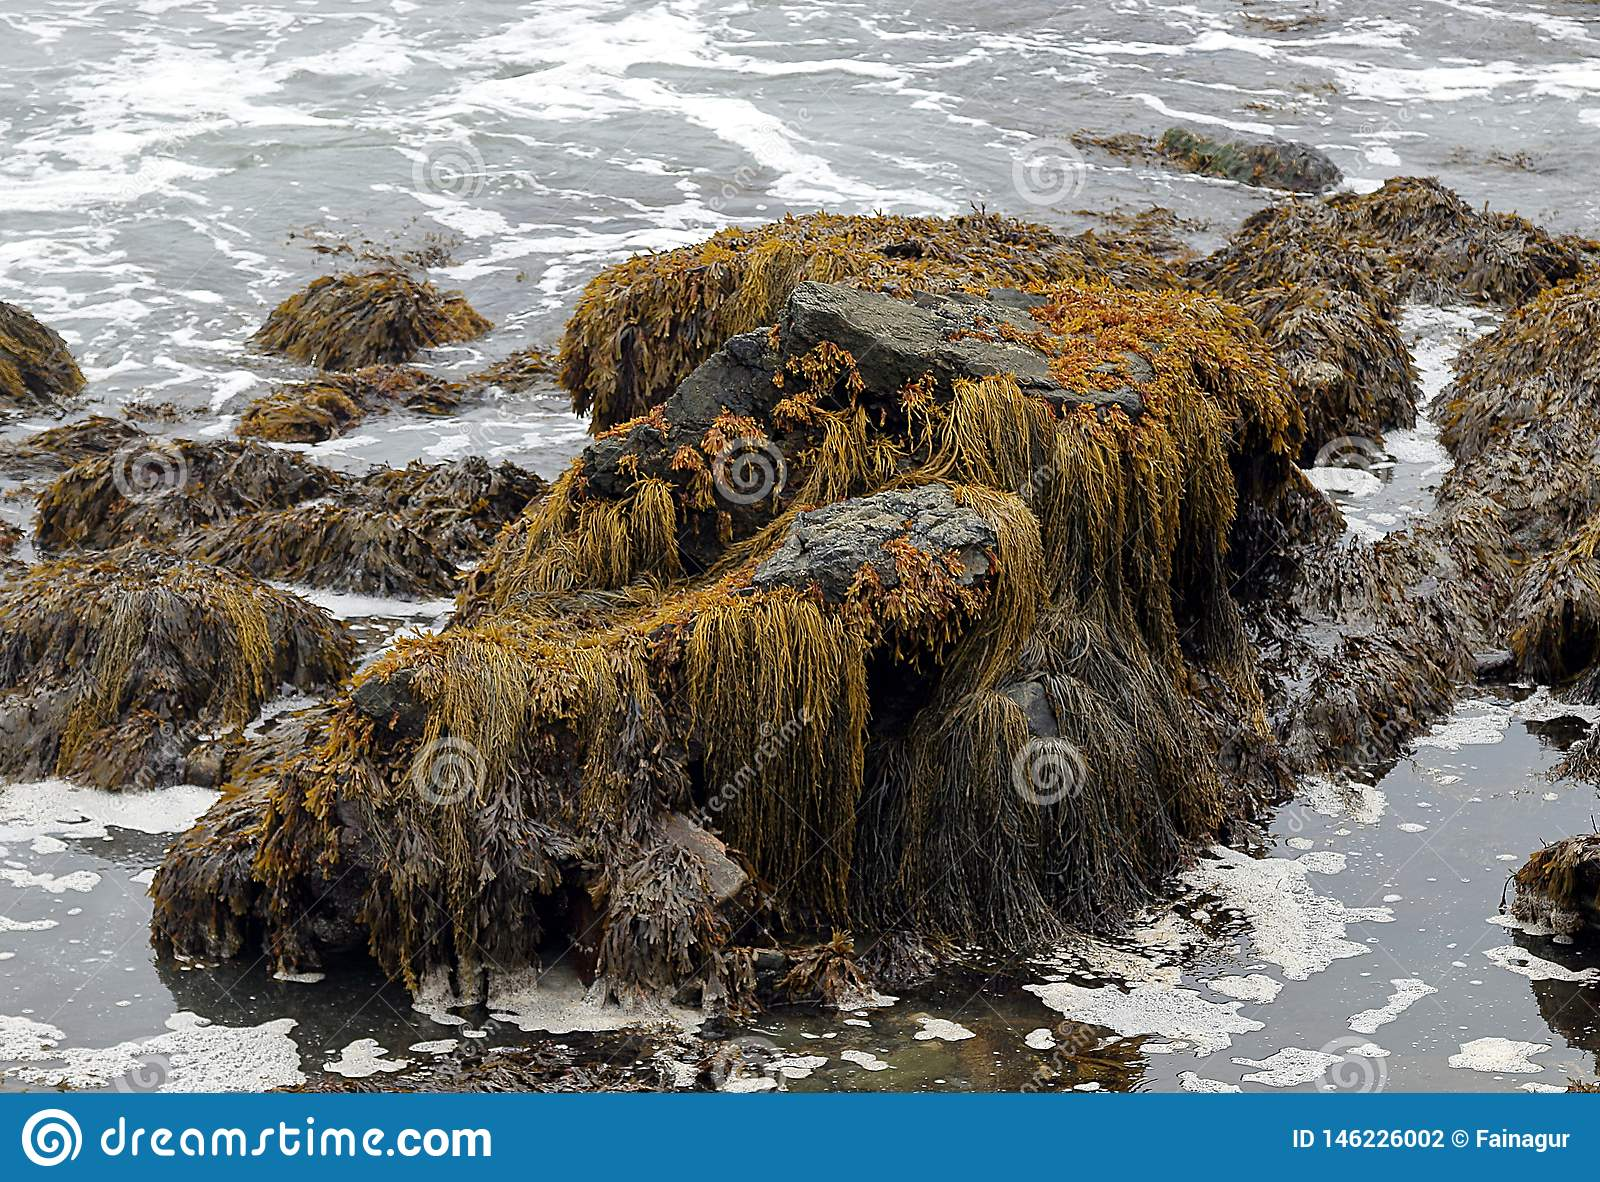 Moss, algae and seaweed on a large rock in the shallow waters